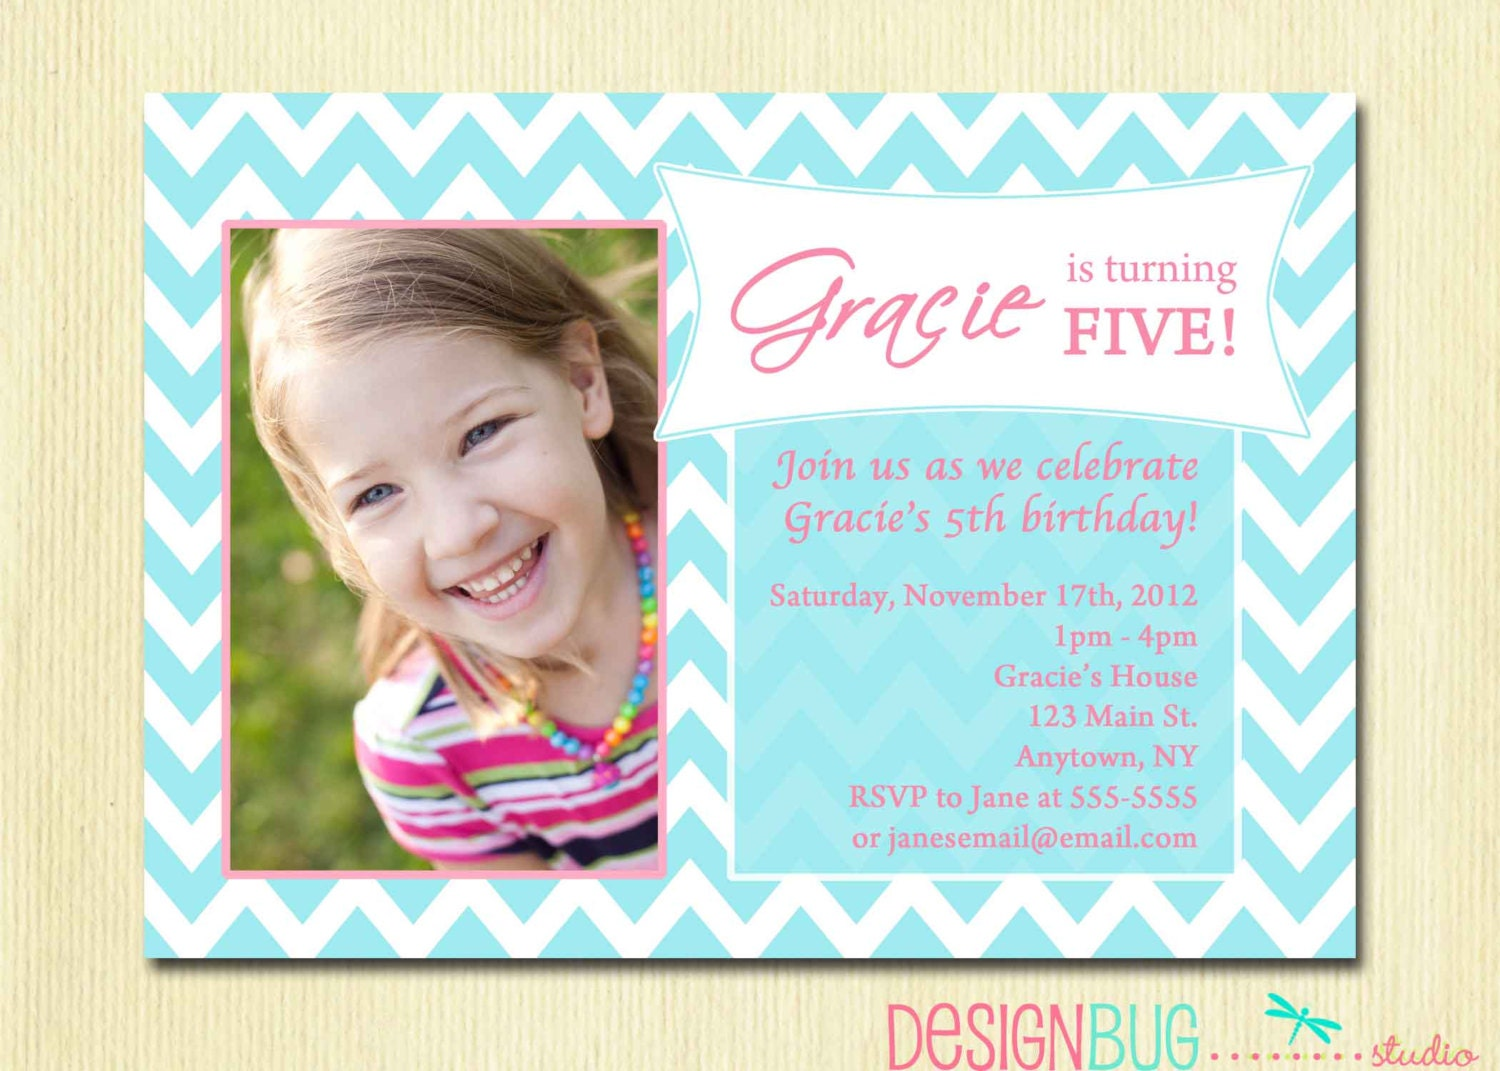 4 year old birthday party invitations juvecenitdelacabrera 4 year old birthday party invitations stopboris Image collections